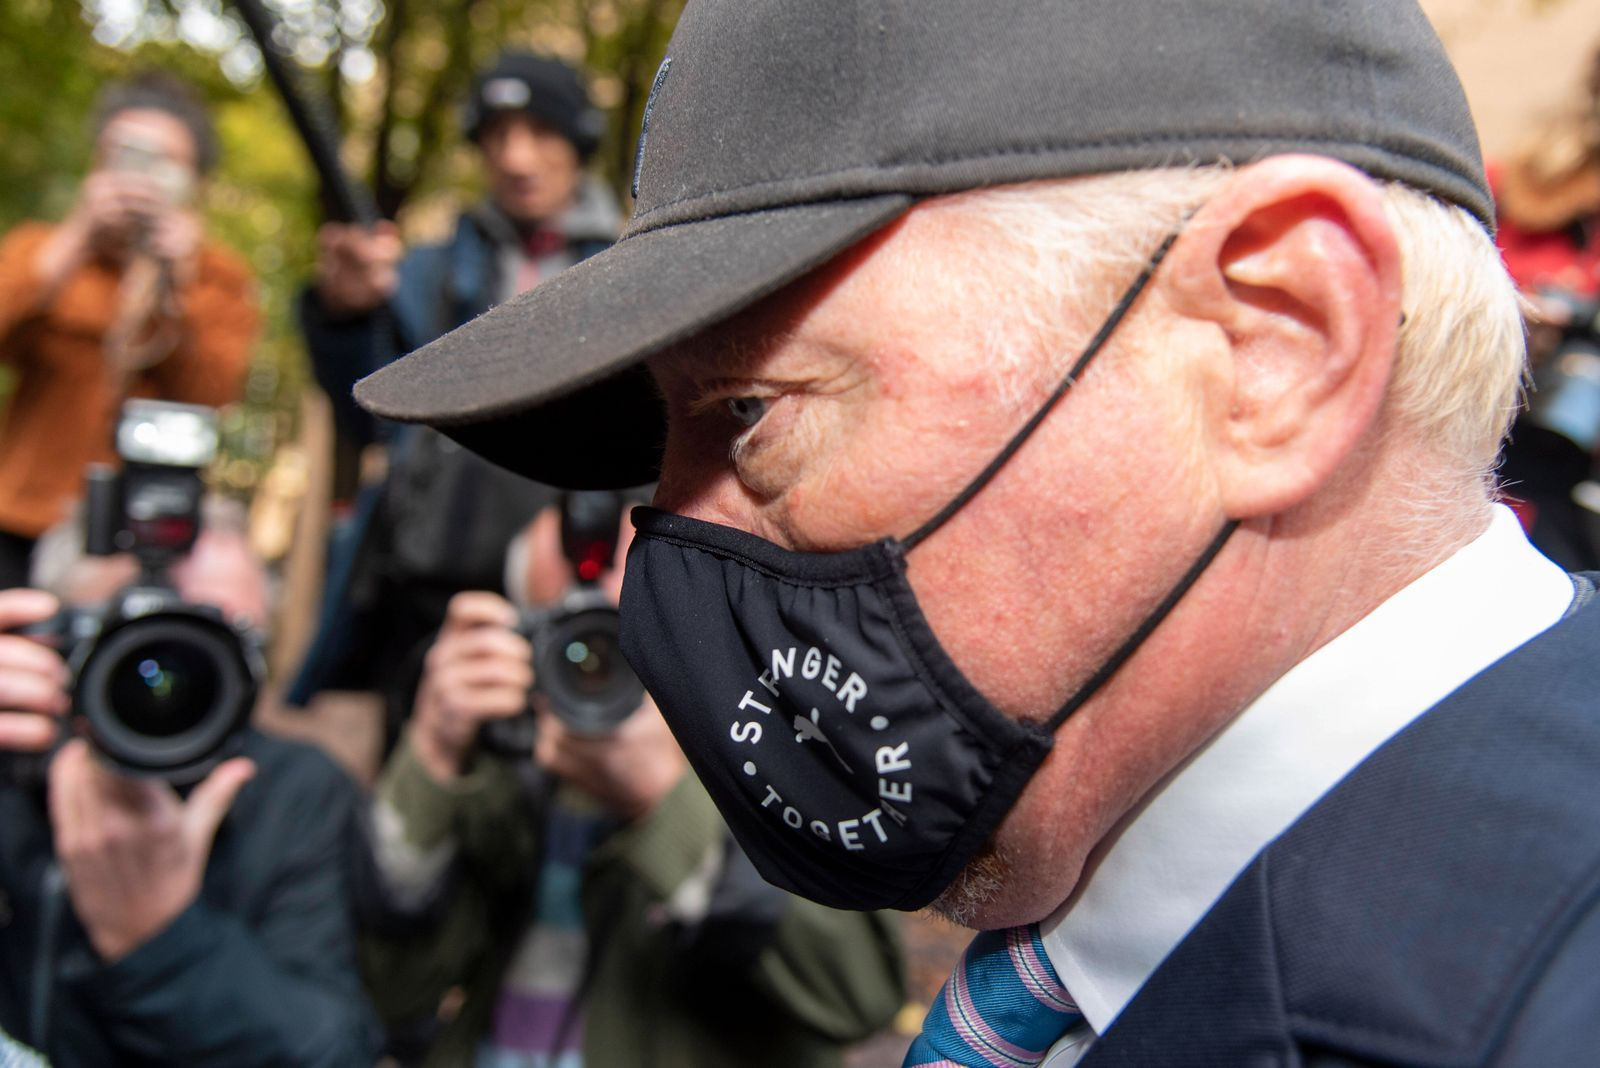 October 22, 2020, London, United Kingdom: Former tennis professional Boris Becker (52), wearing a facemask leaves South